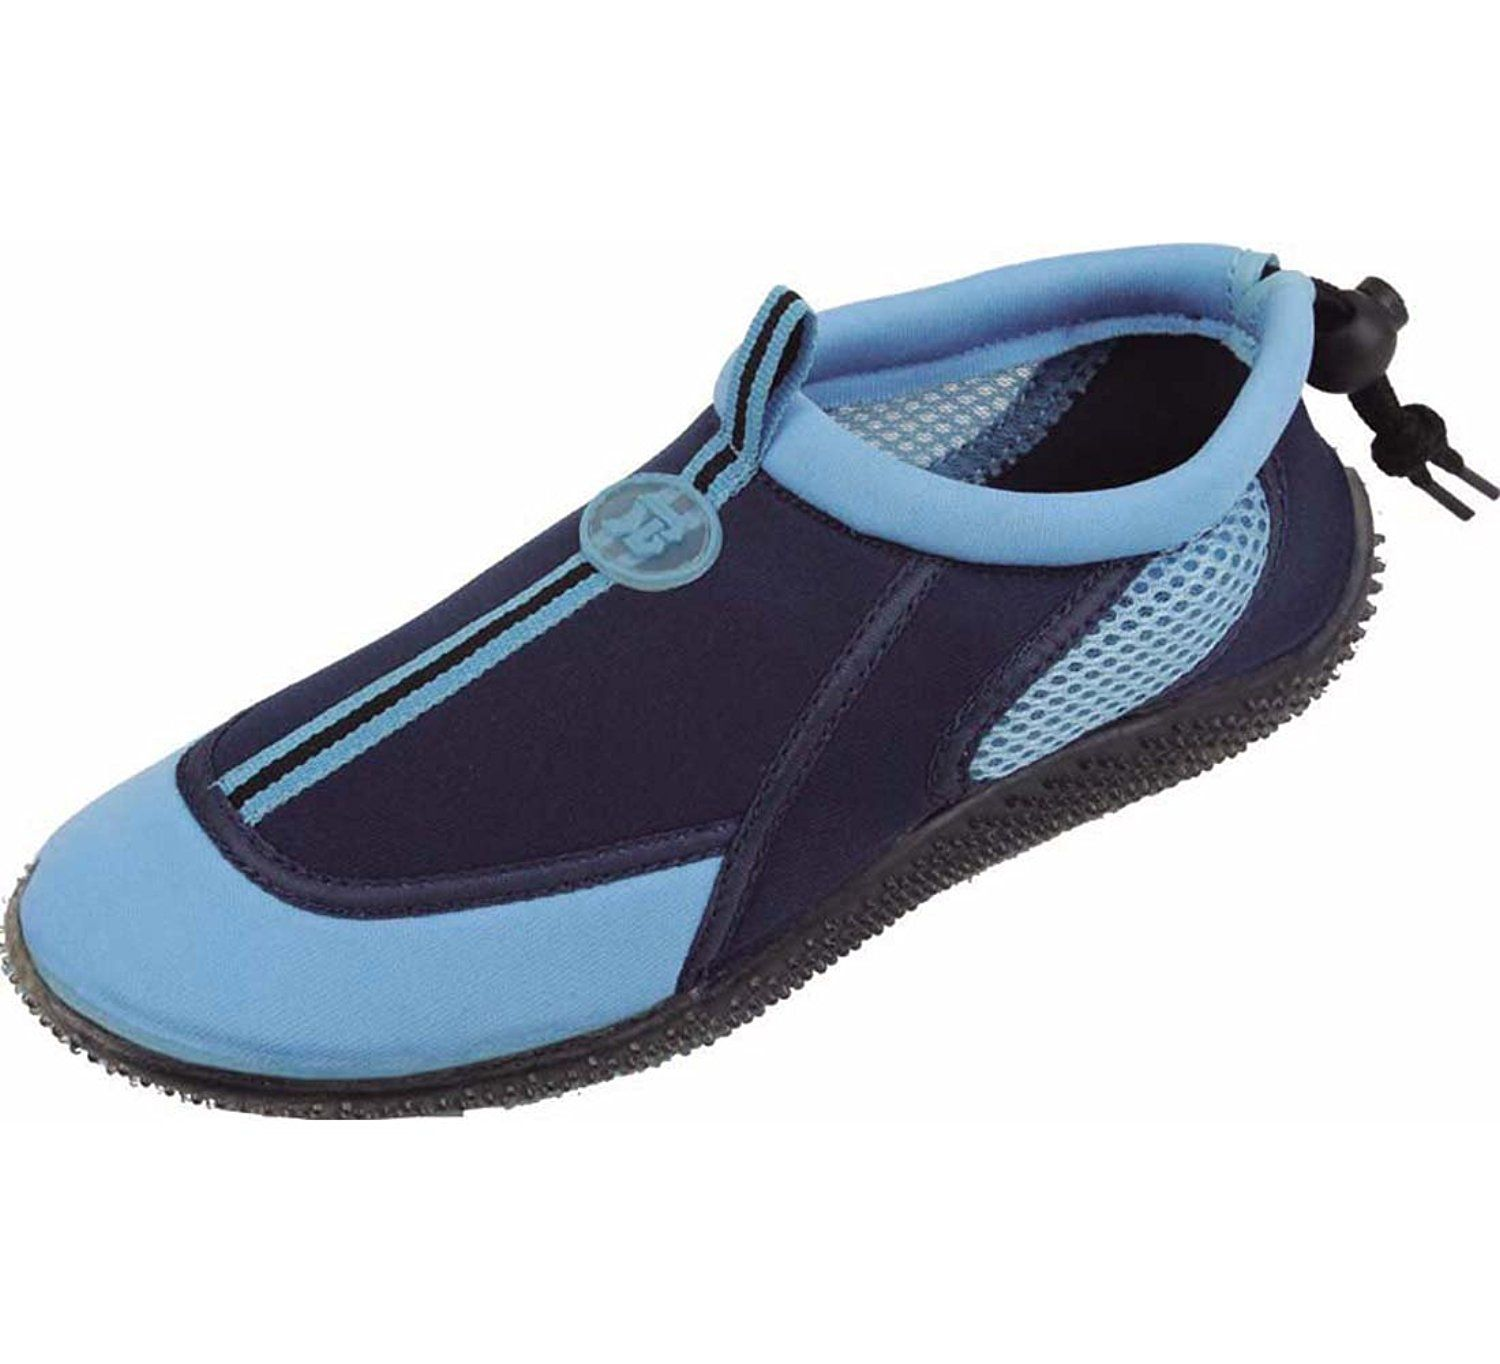 S2905 Women's 4 Colors Water Shoes Aqua Socks Slip on Athletic Pool Beach Surf Yoga Dance Exercise